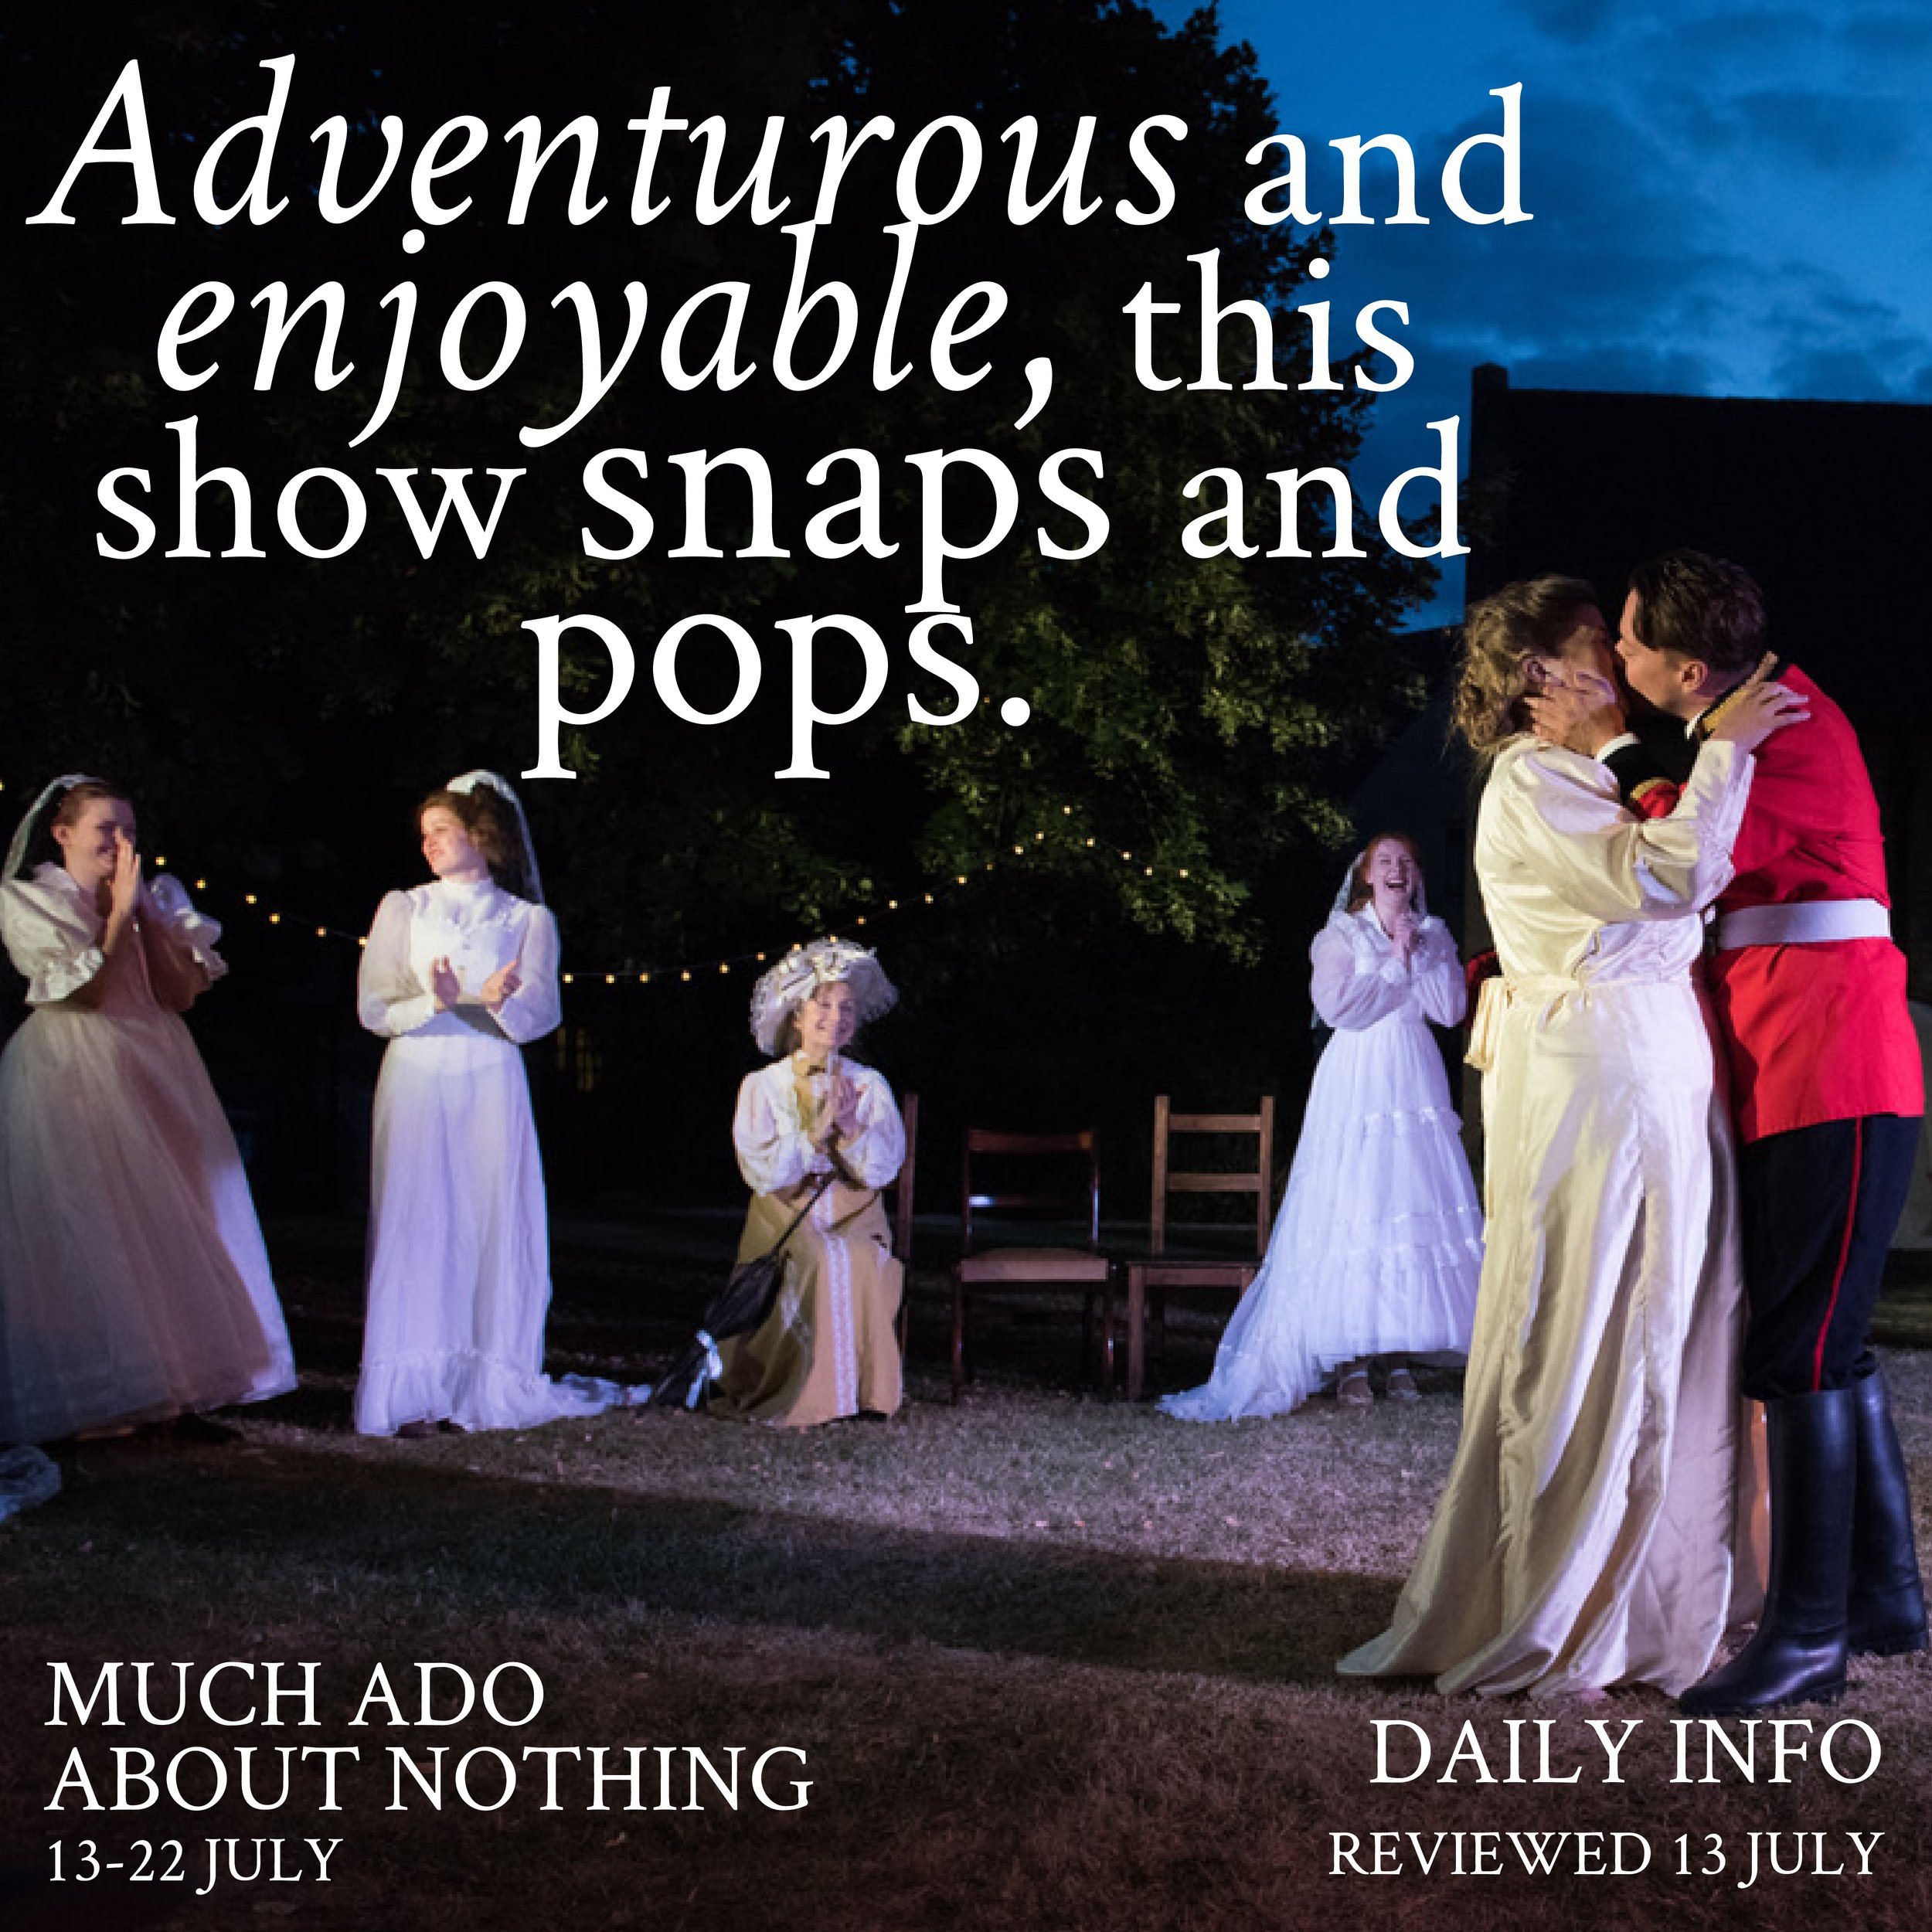 Daily Info review - Much Ado (FB).jpeg